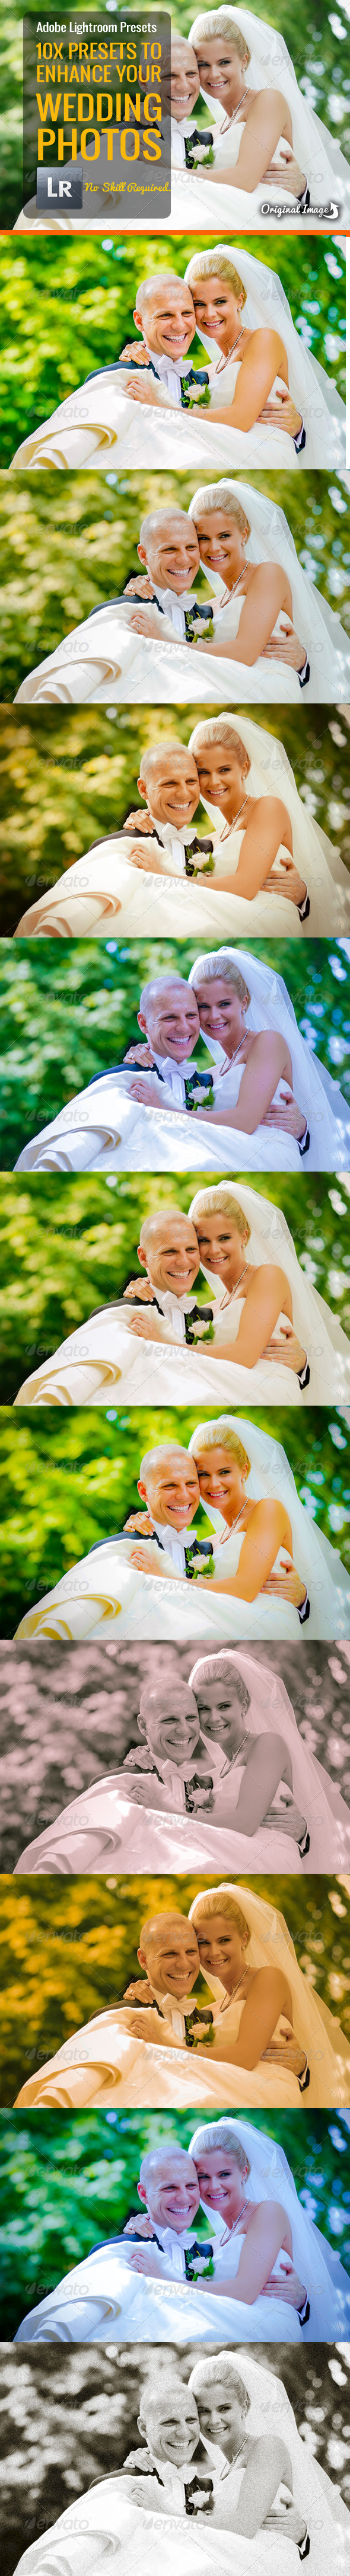 Wedding Photo Presets - Lightroom Presets Add-ons